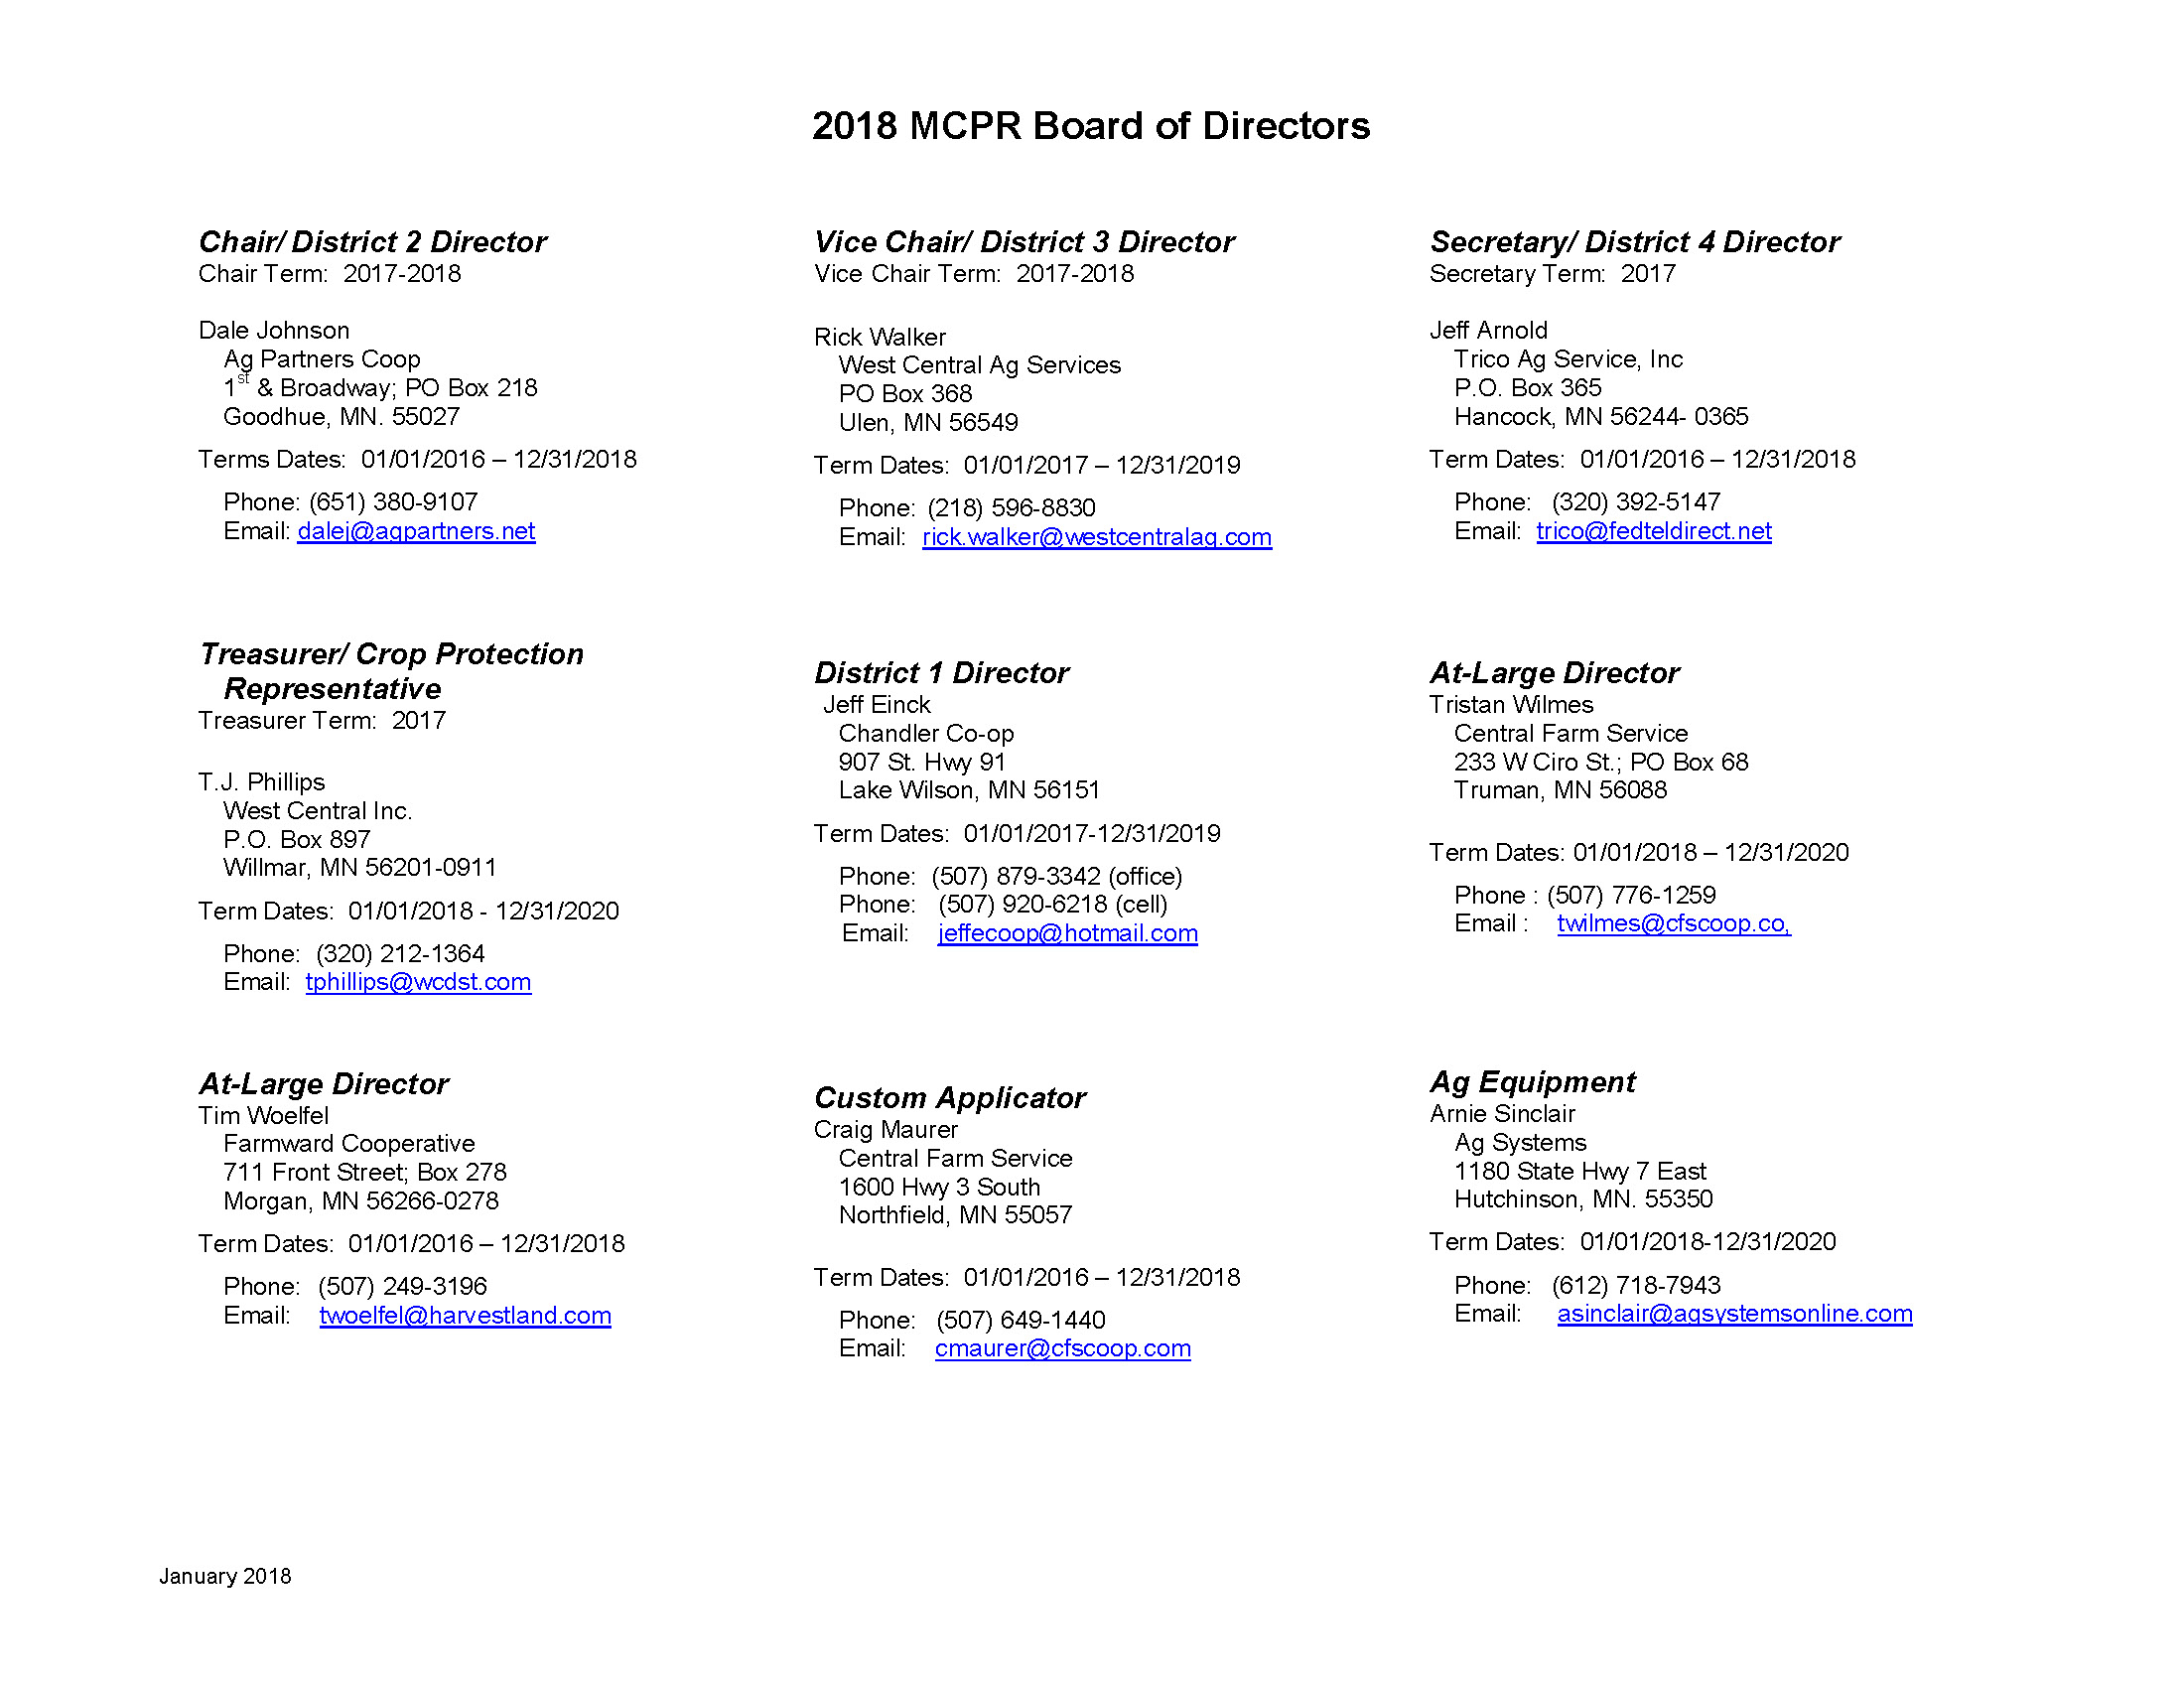 2018 MCPR Board of Directors_April2018_Page_1